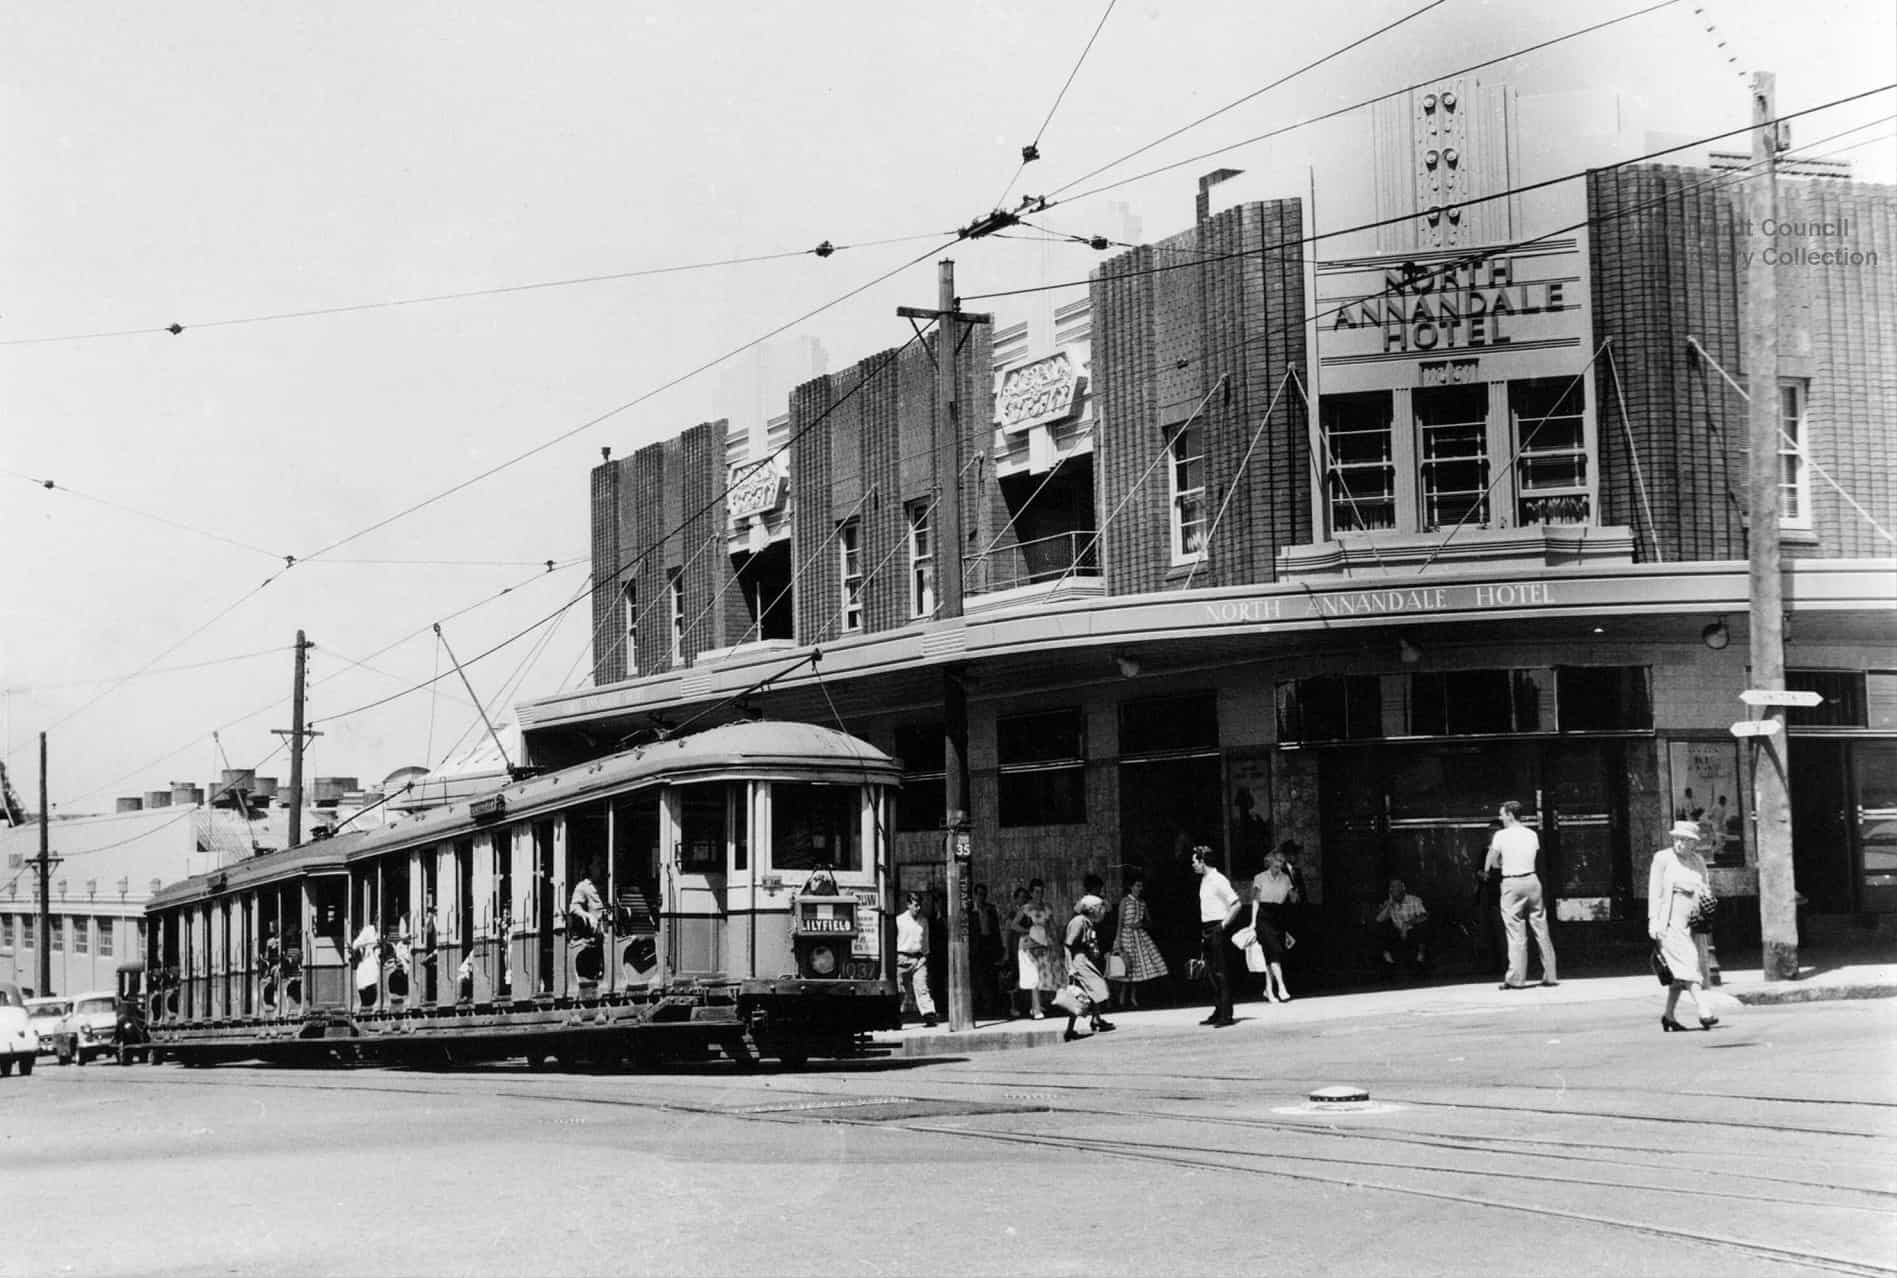 Corner Booth and Johnston Streets, Annandale, NSW 1955